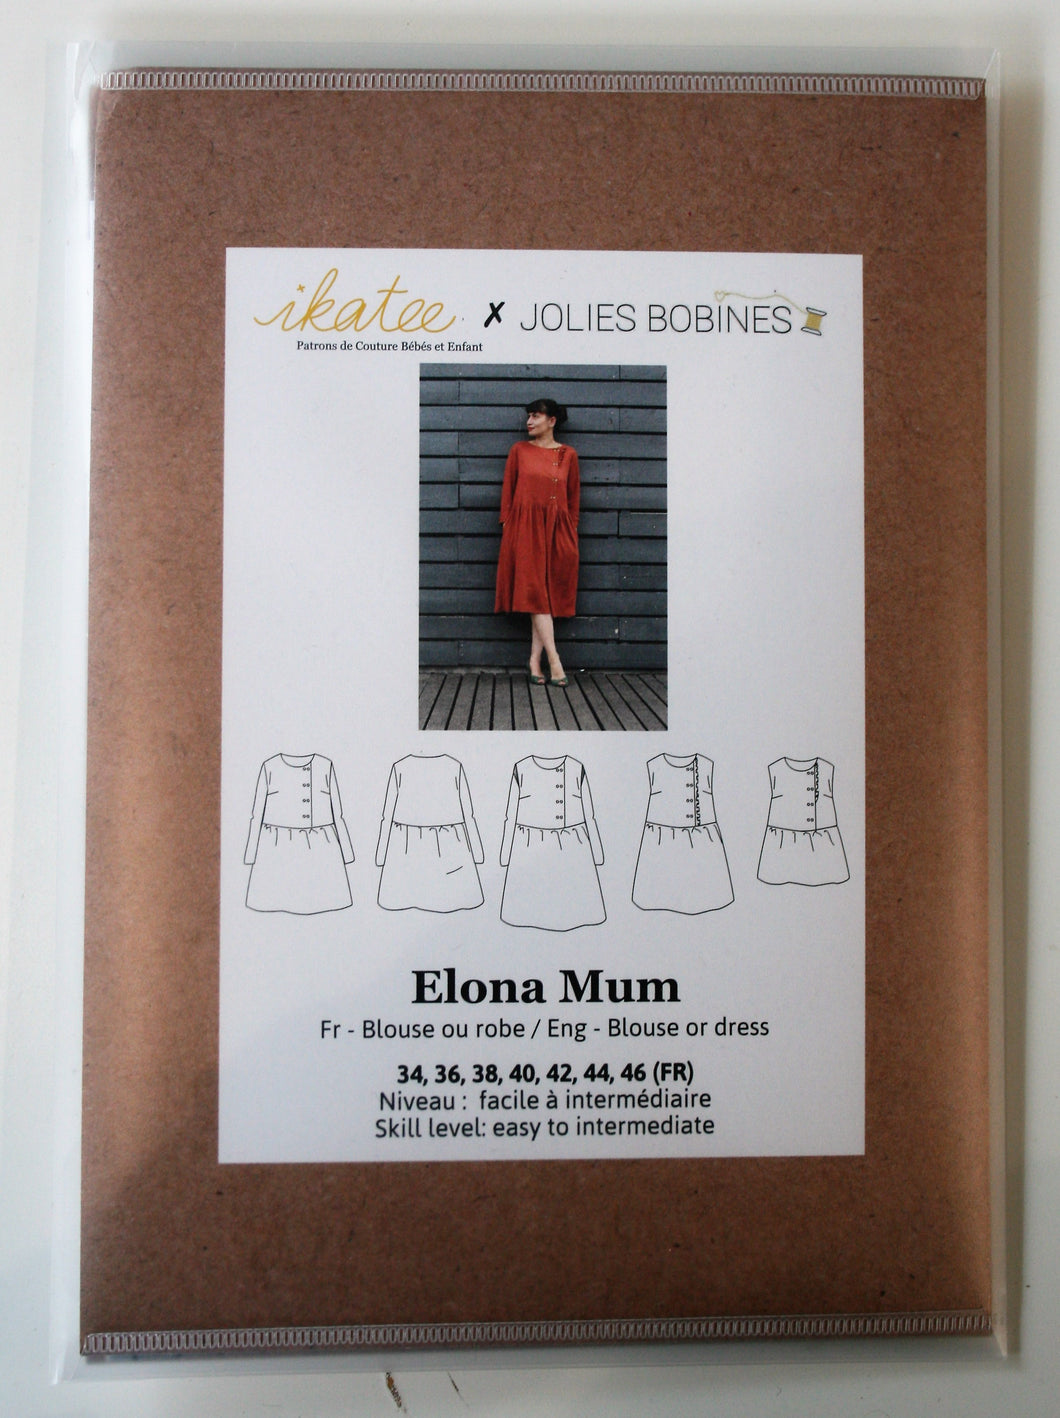 Elona Mum - Blouse & Dress - ikatee